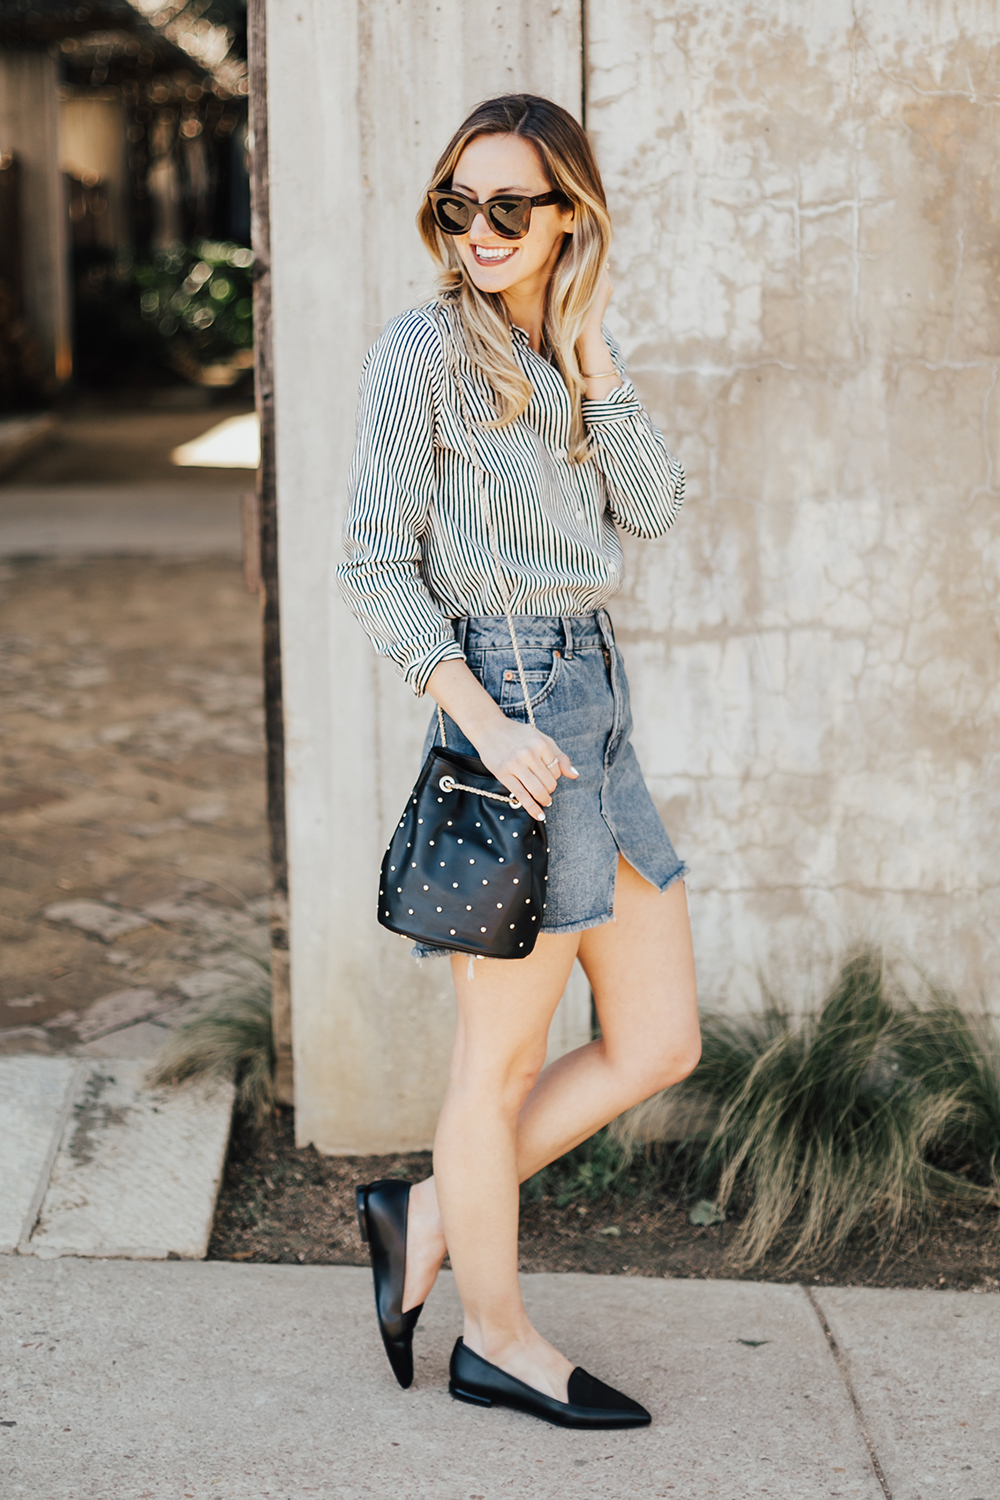 dc6f57473 10 Ways to Wear a Denim Mini Skirt - The Effortless Chic